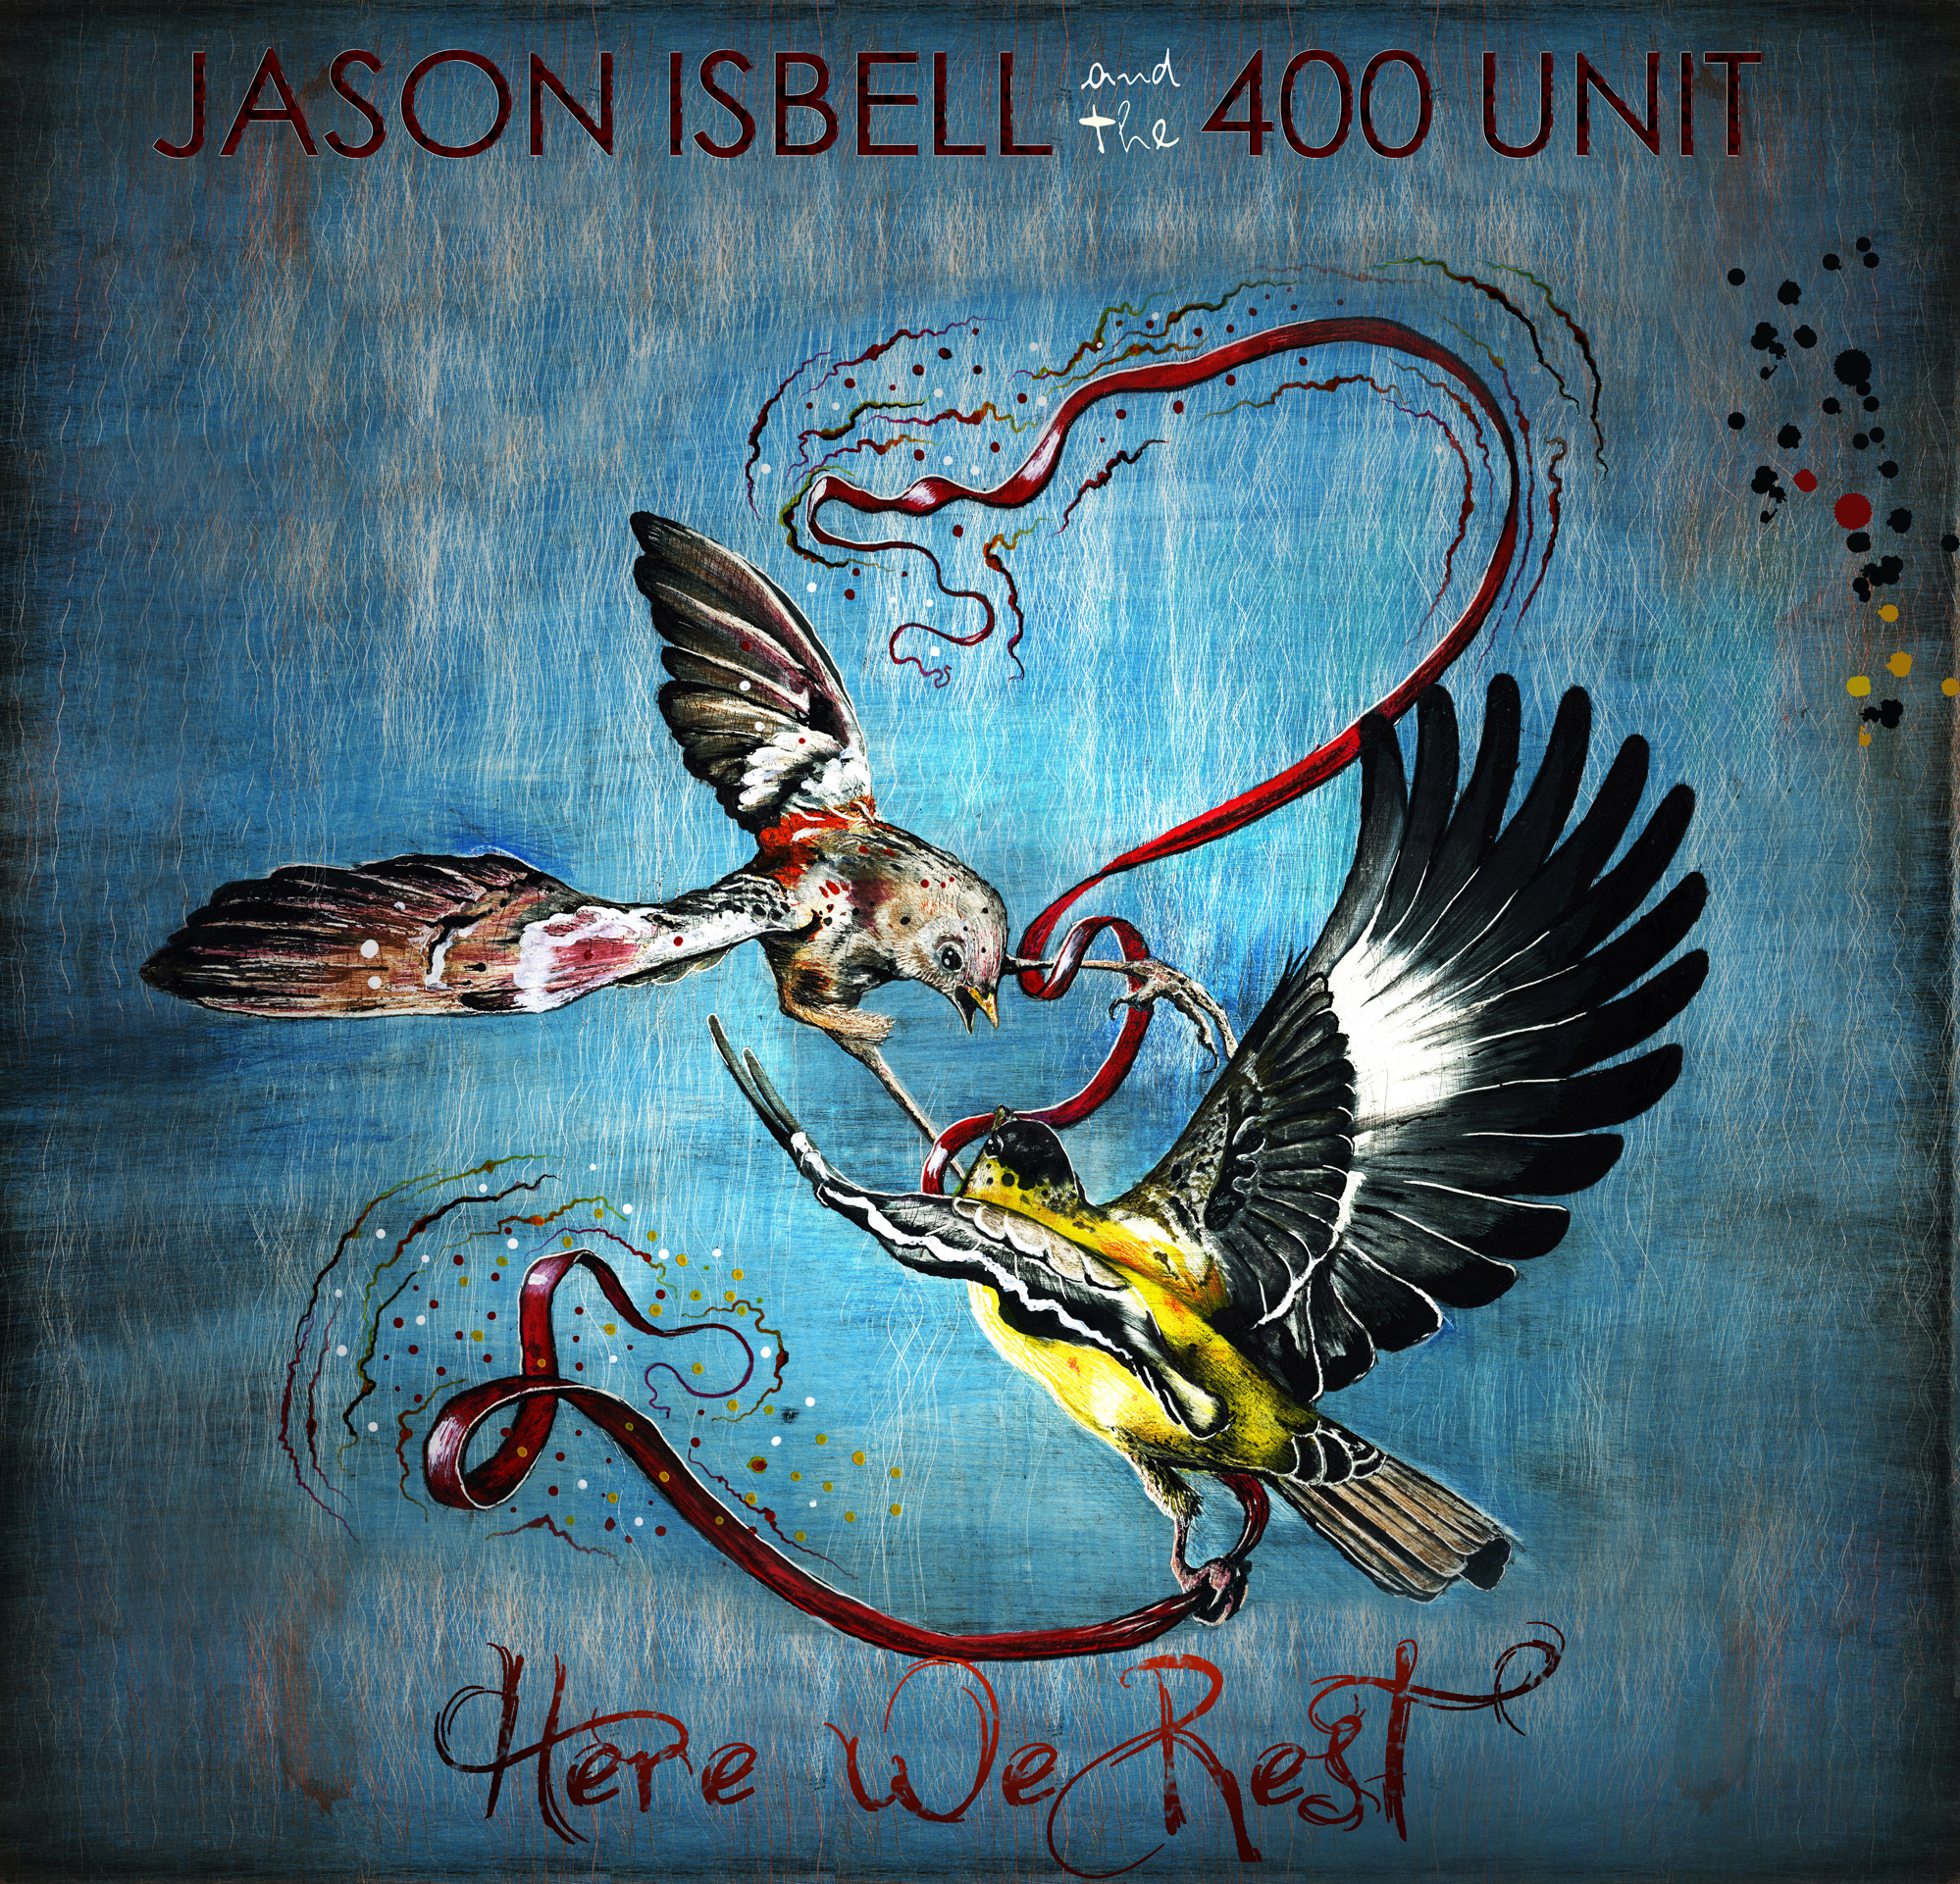 lightning rod records artists jason isbell and the 400 unit. Black Bedroom Furniture Sets. Home Design Ideas